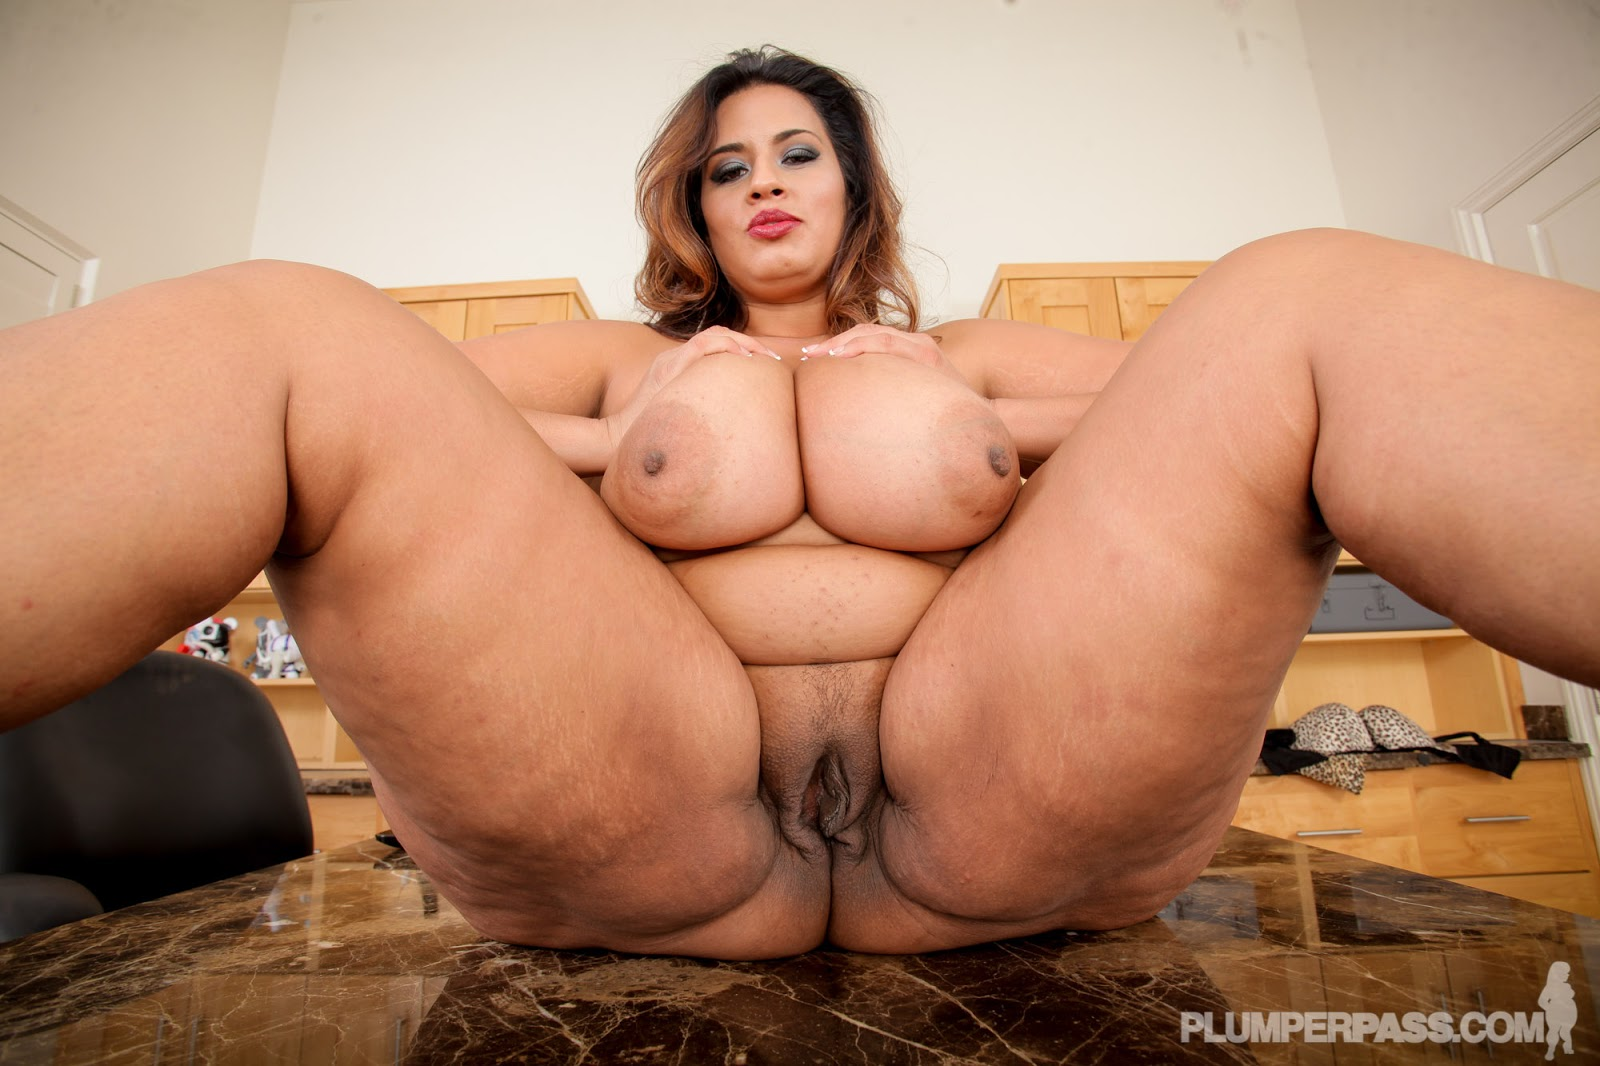 bbw girls eskorte star